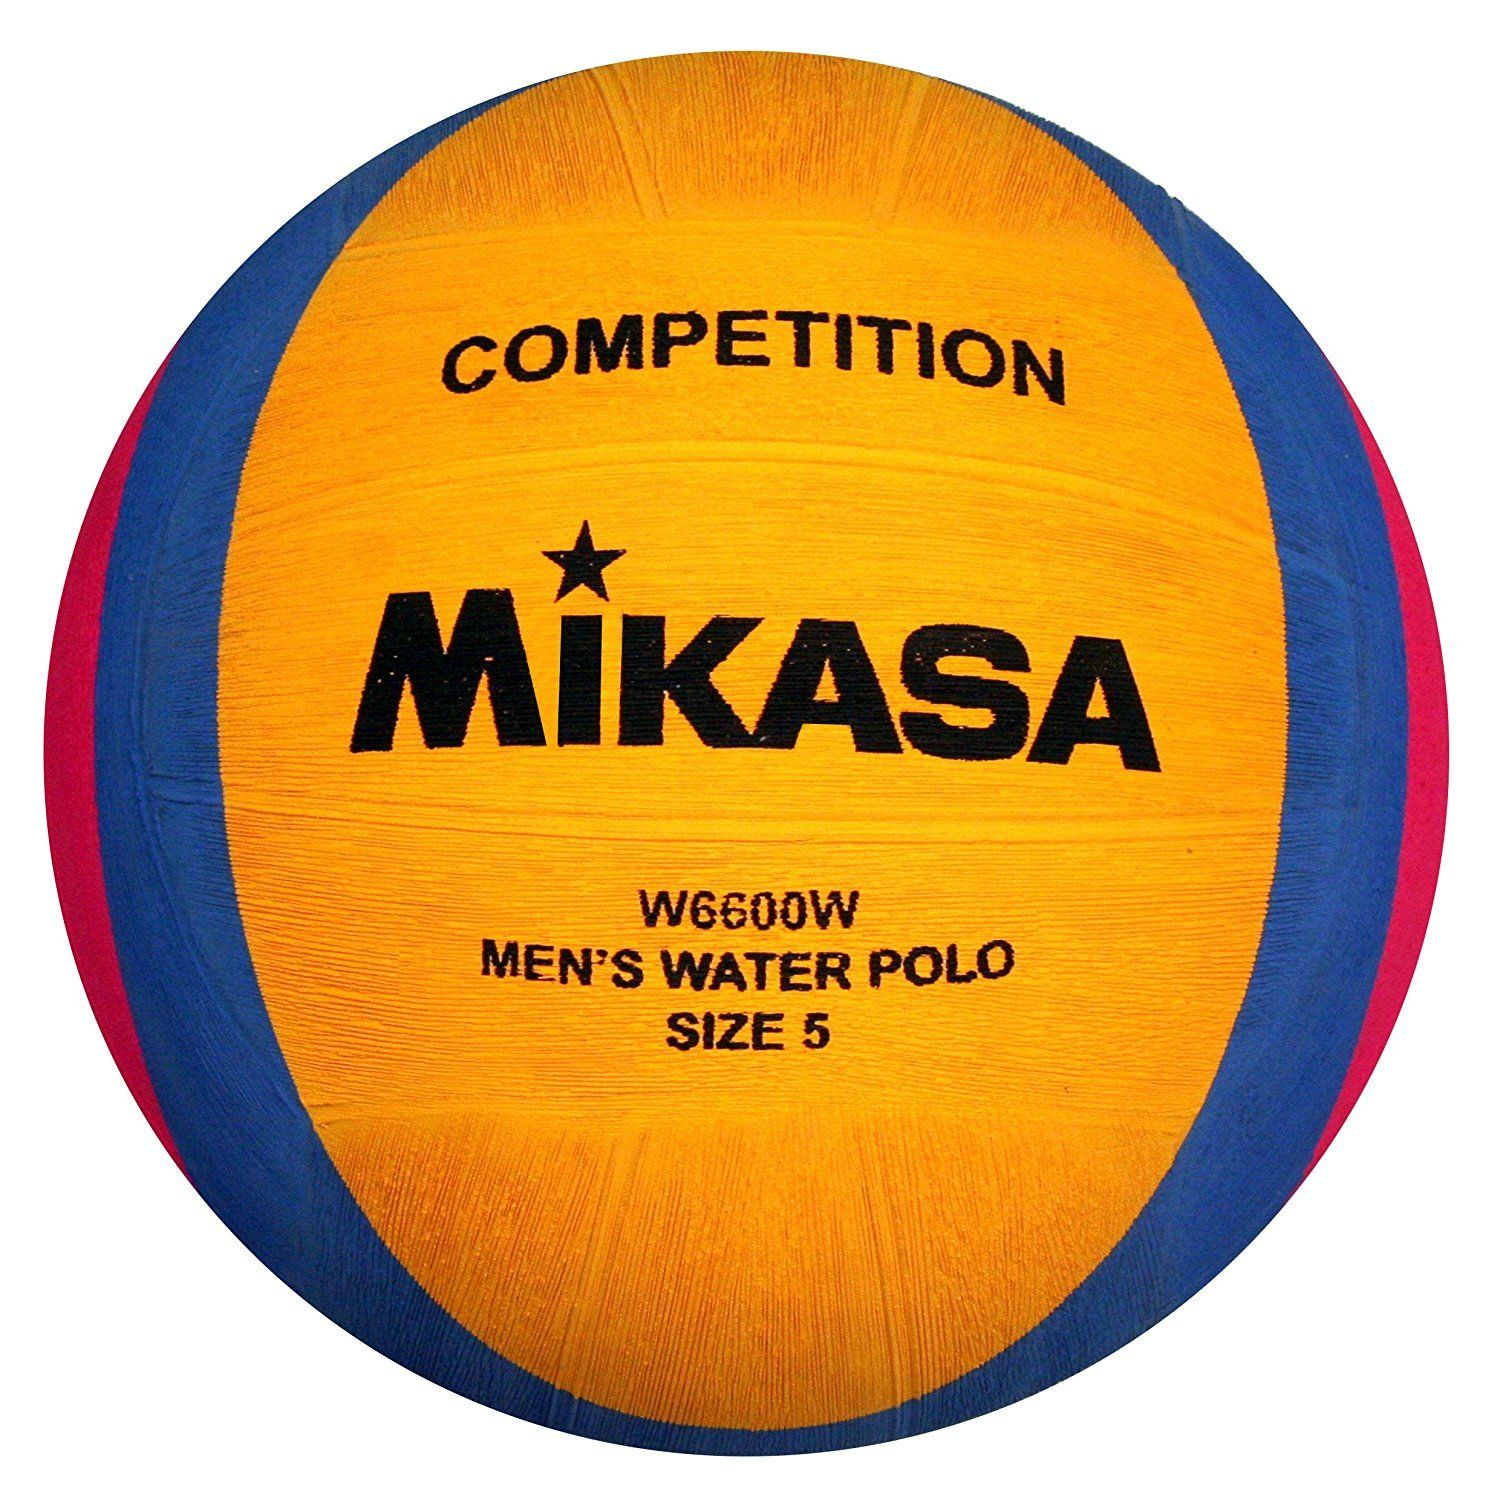 Mikasa W6600W Competition Water Polo Game Ball, Size 5 by